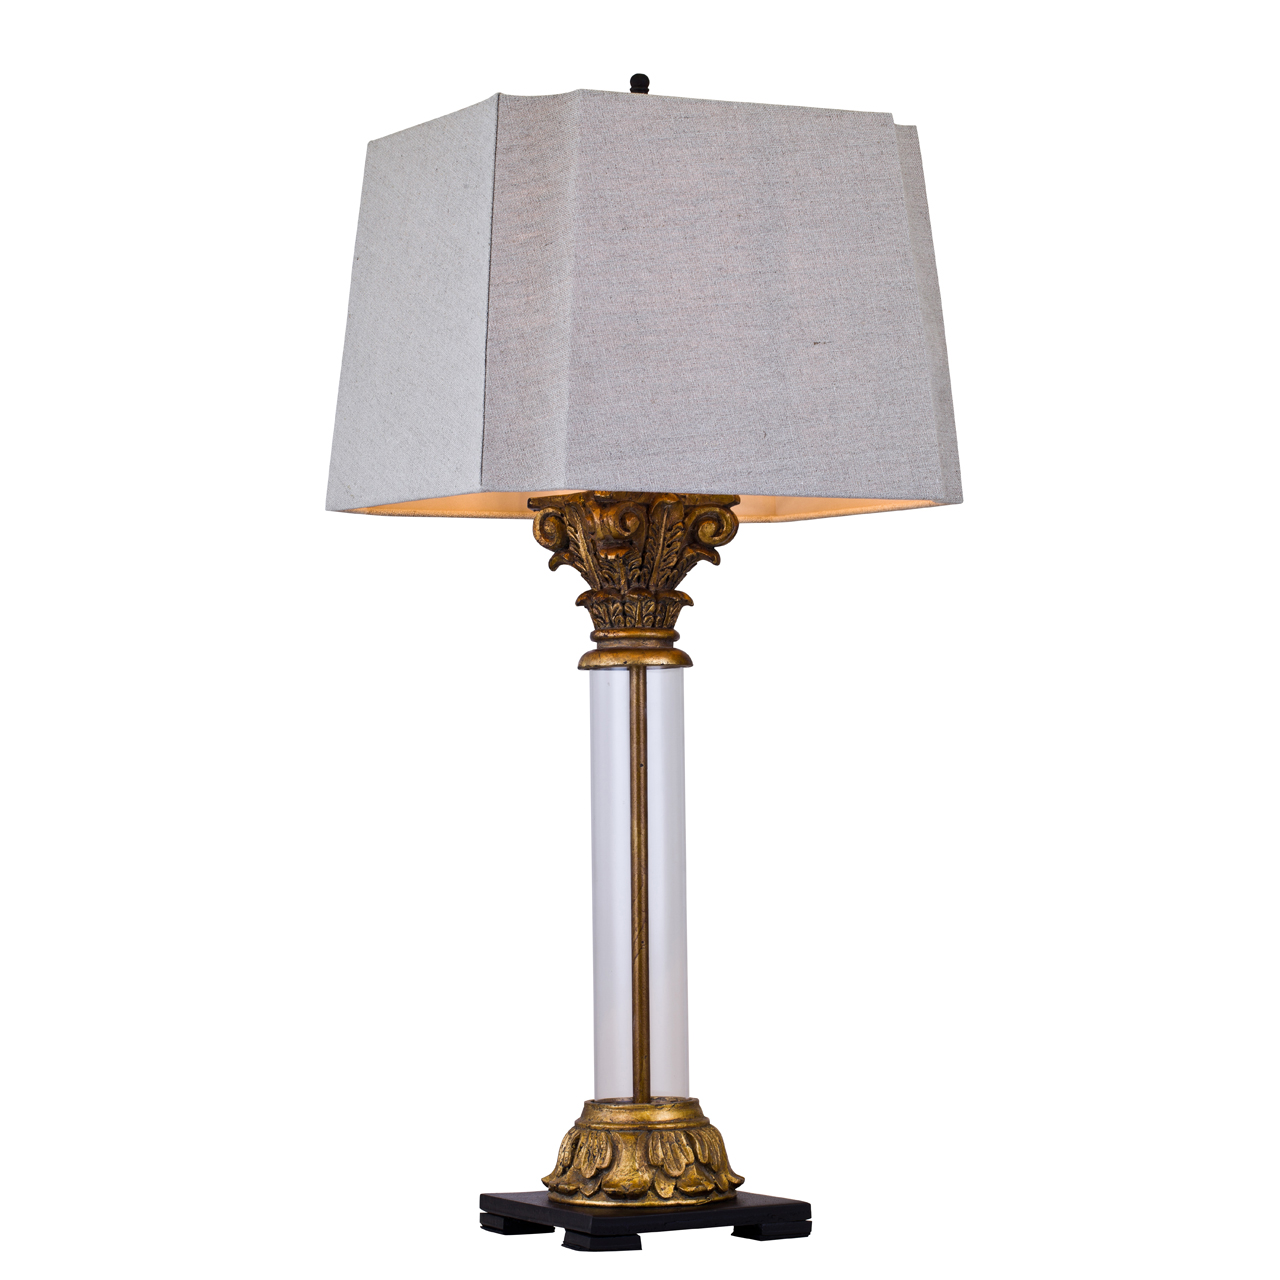 Brass lamps go antique or modern warisan lighting spinning a brass lamp top geotapseo Choice Image